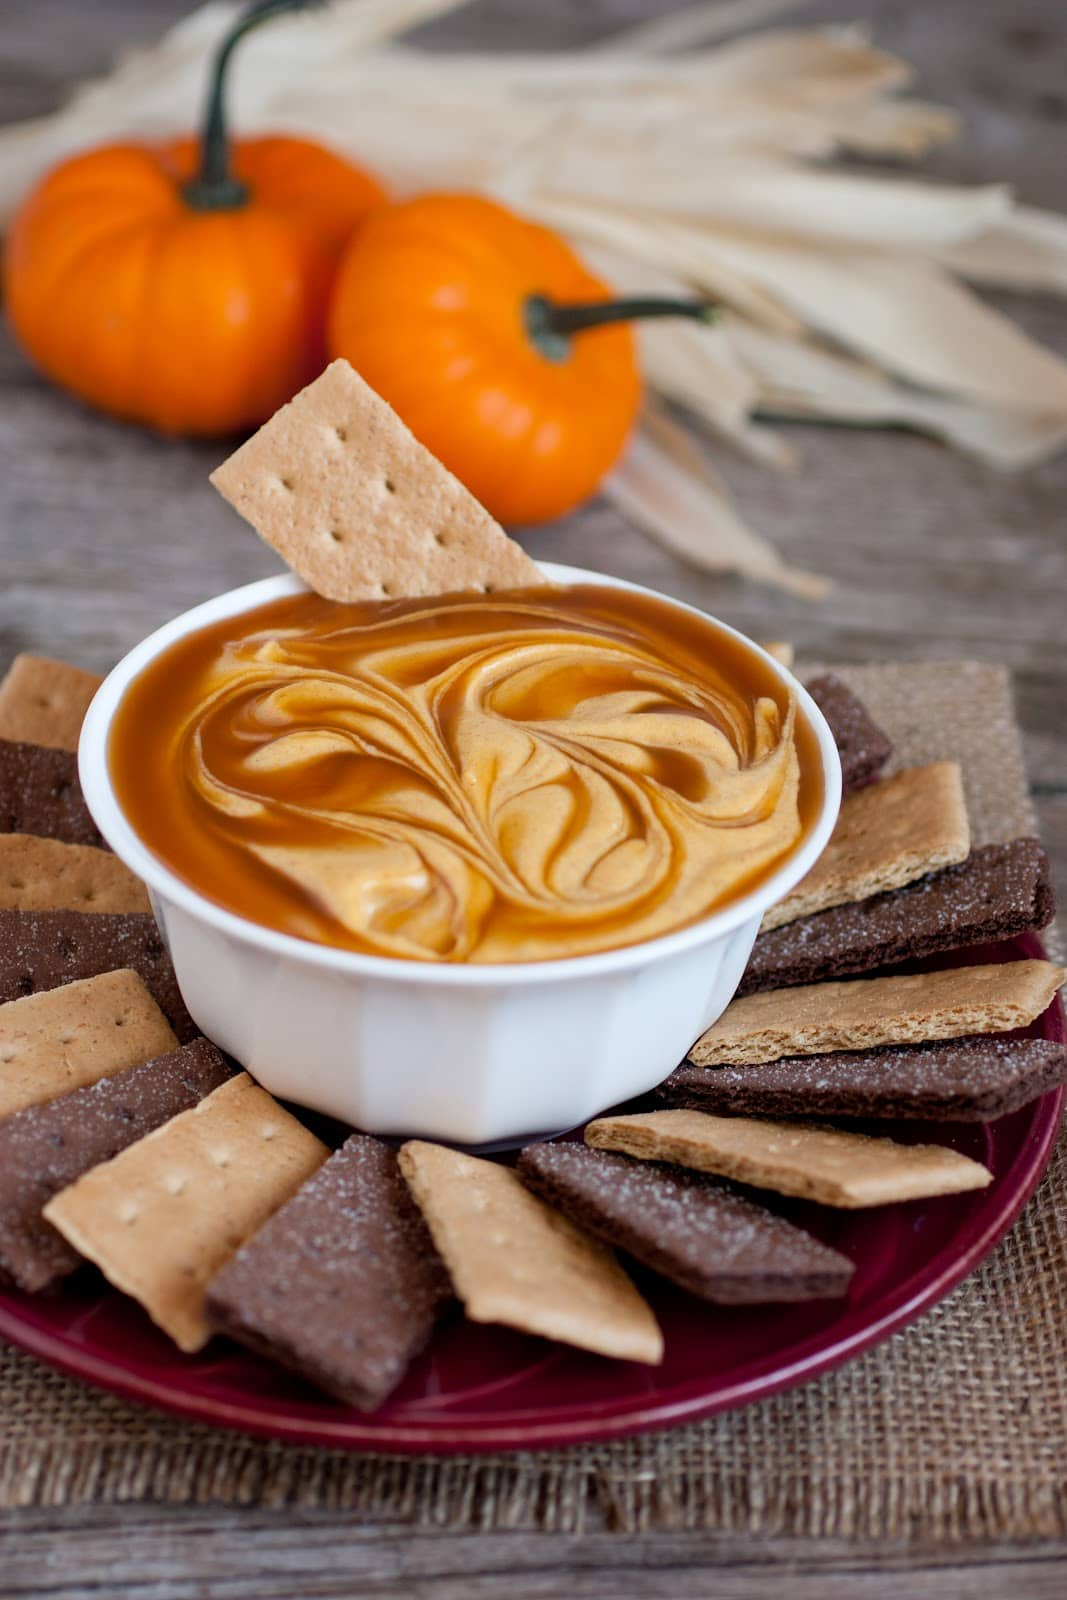 Cooking Classy: Pumpkin Pie Dip (A 5 Minute Recipe)